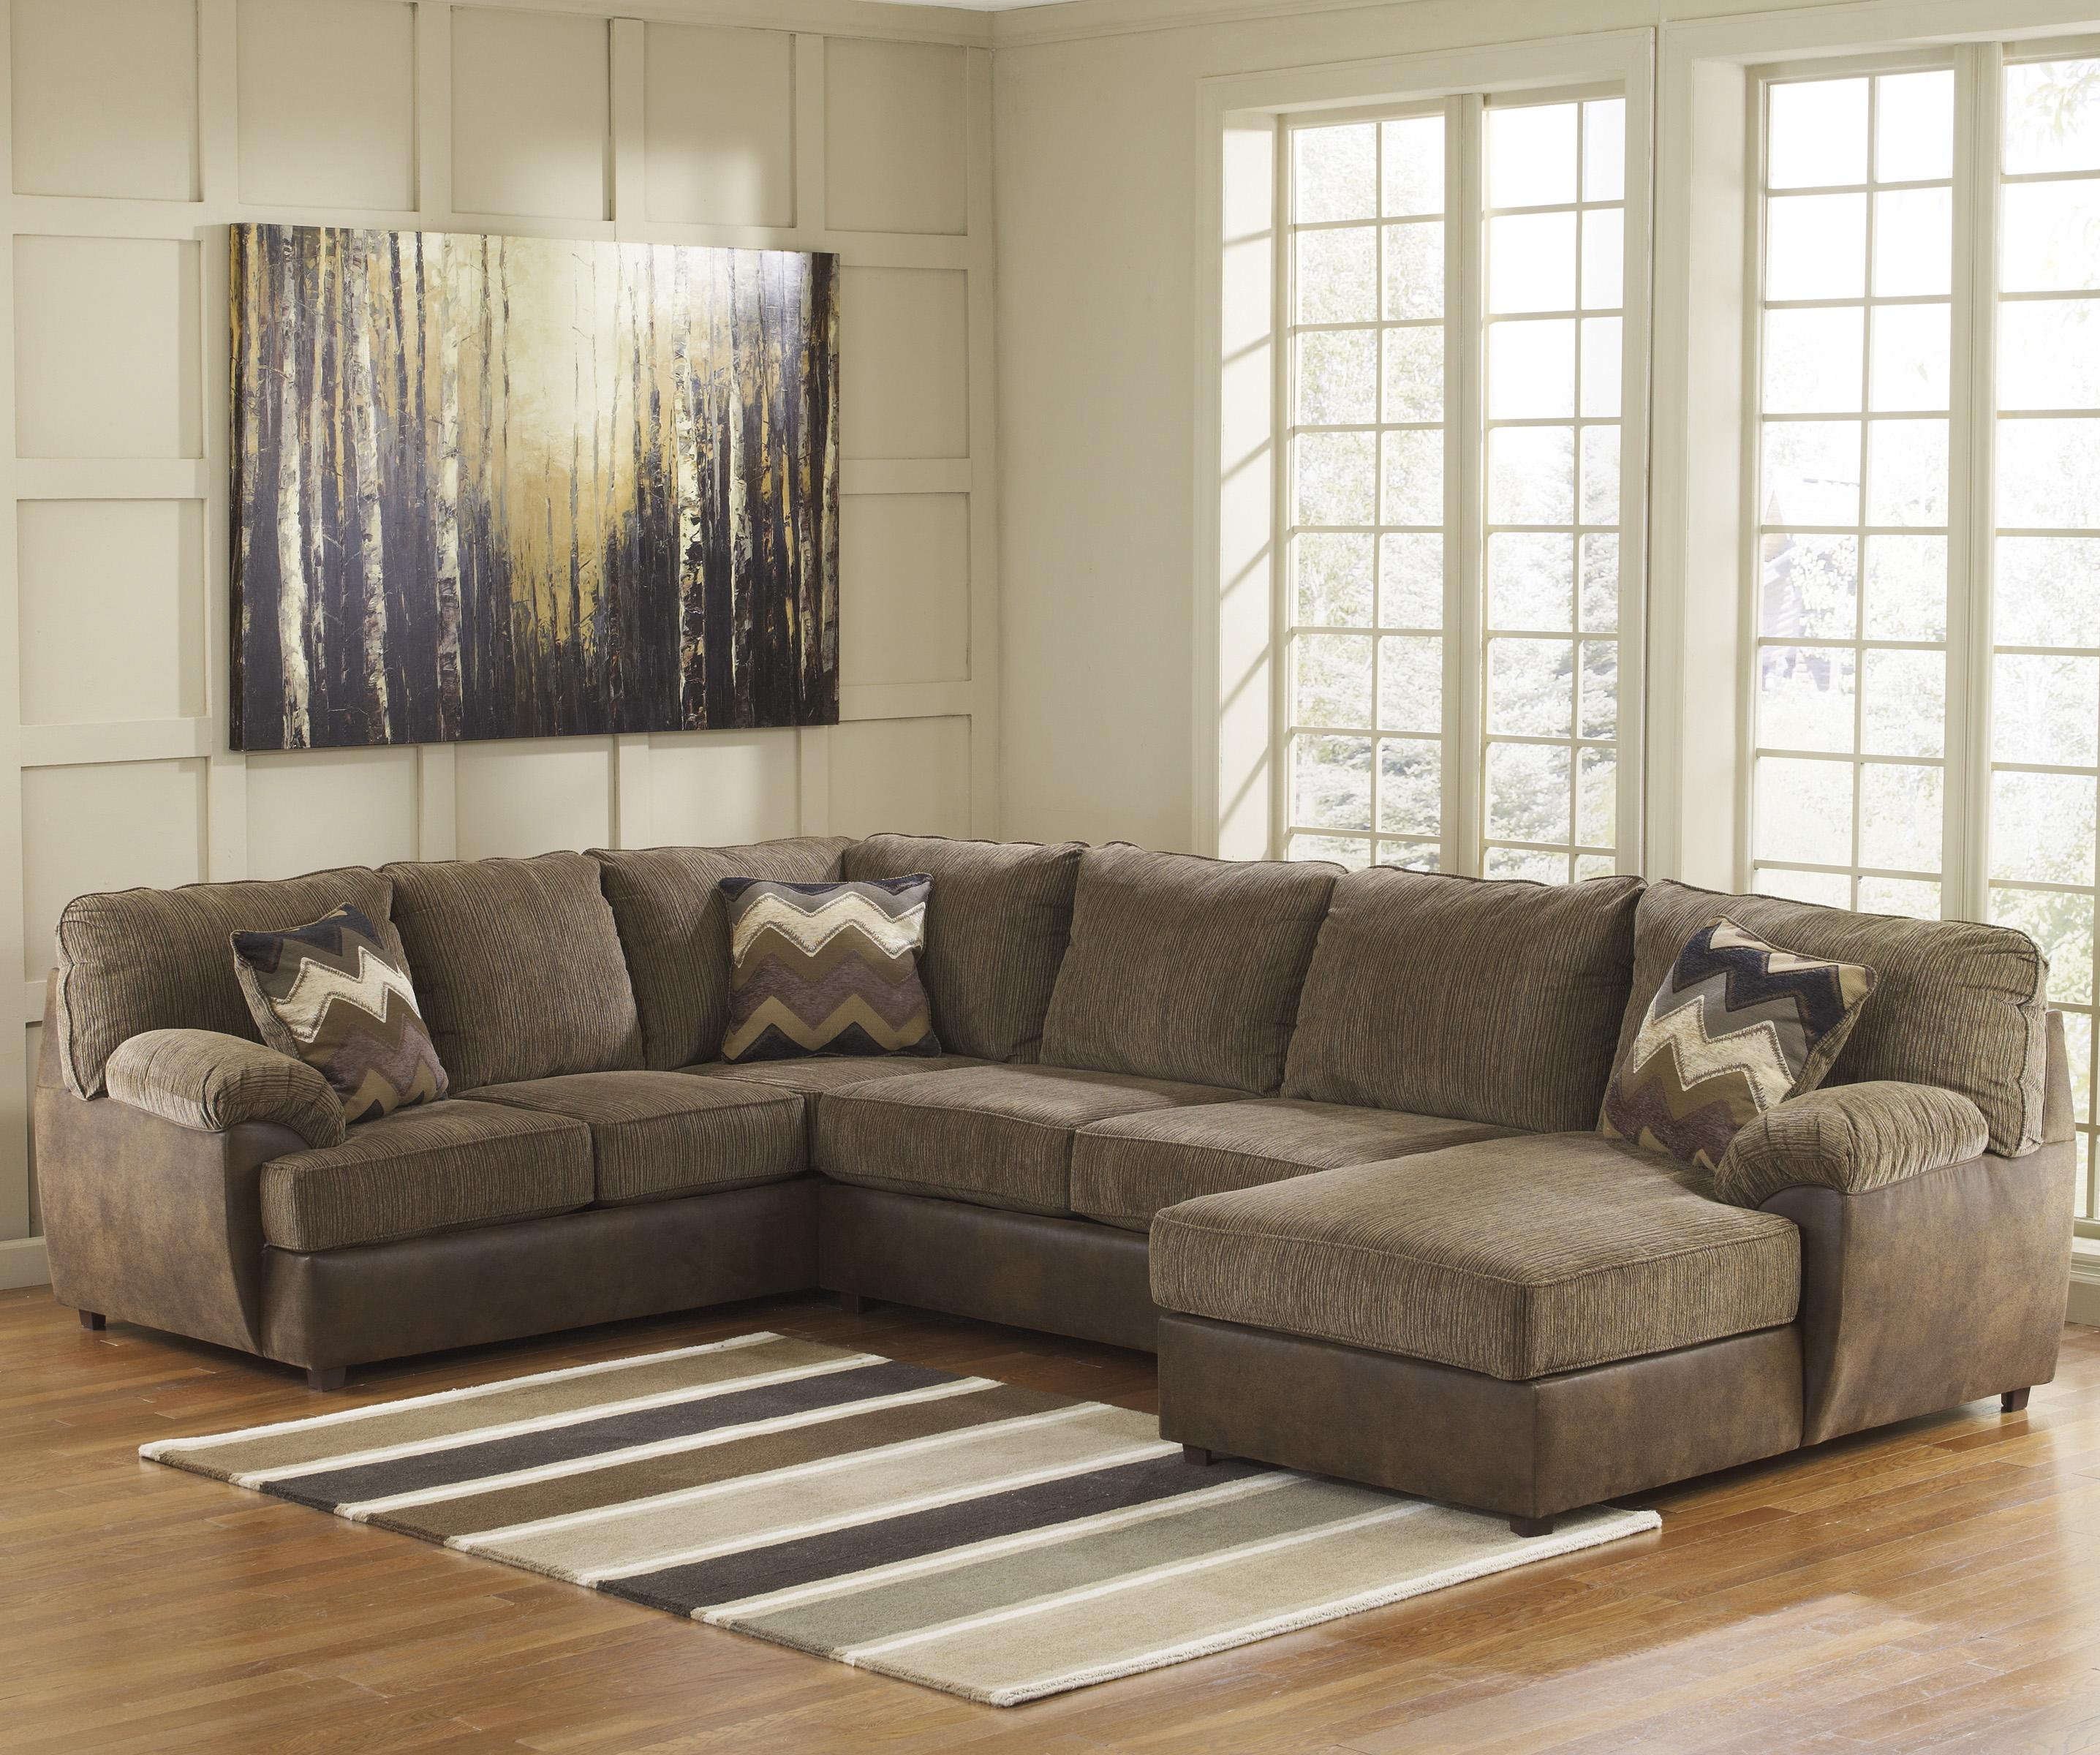 Benchcraft Cladio - Hickory 3-Piece Sectional with Right Chaise - Item Number: 2410066+34+17